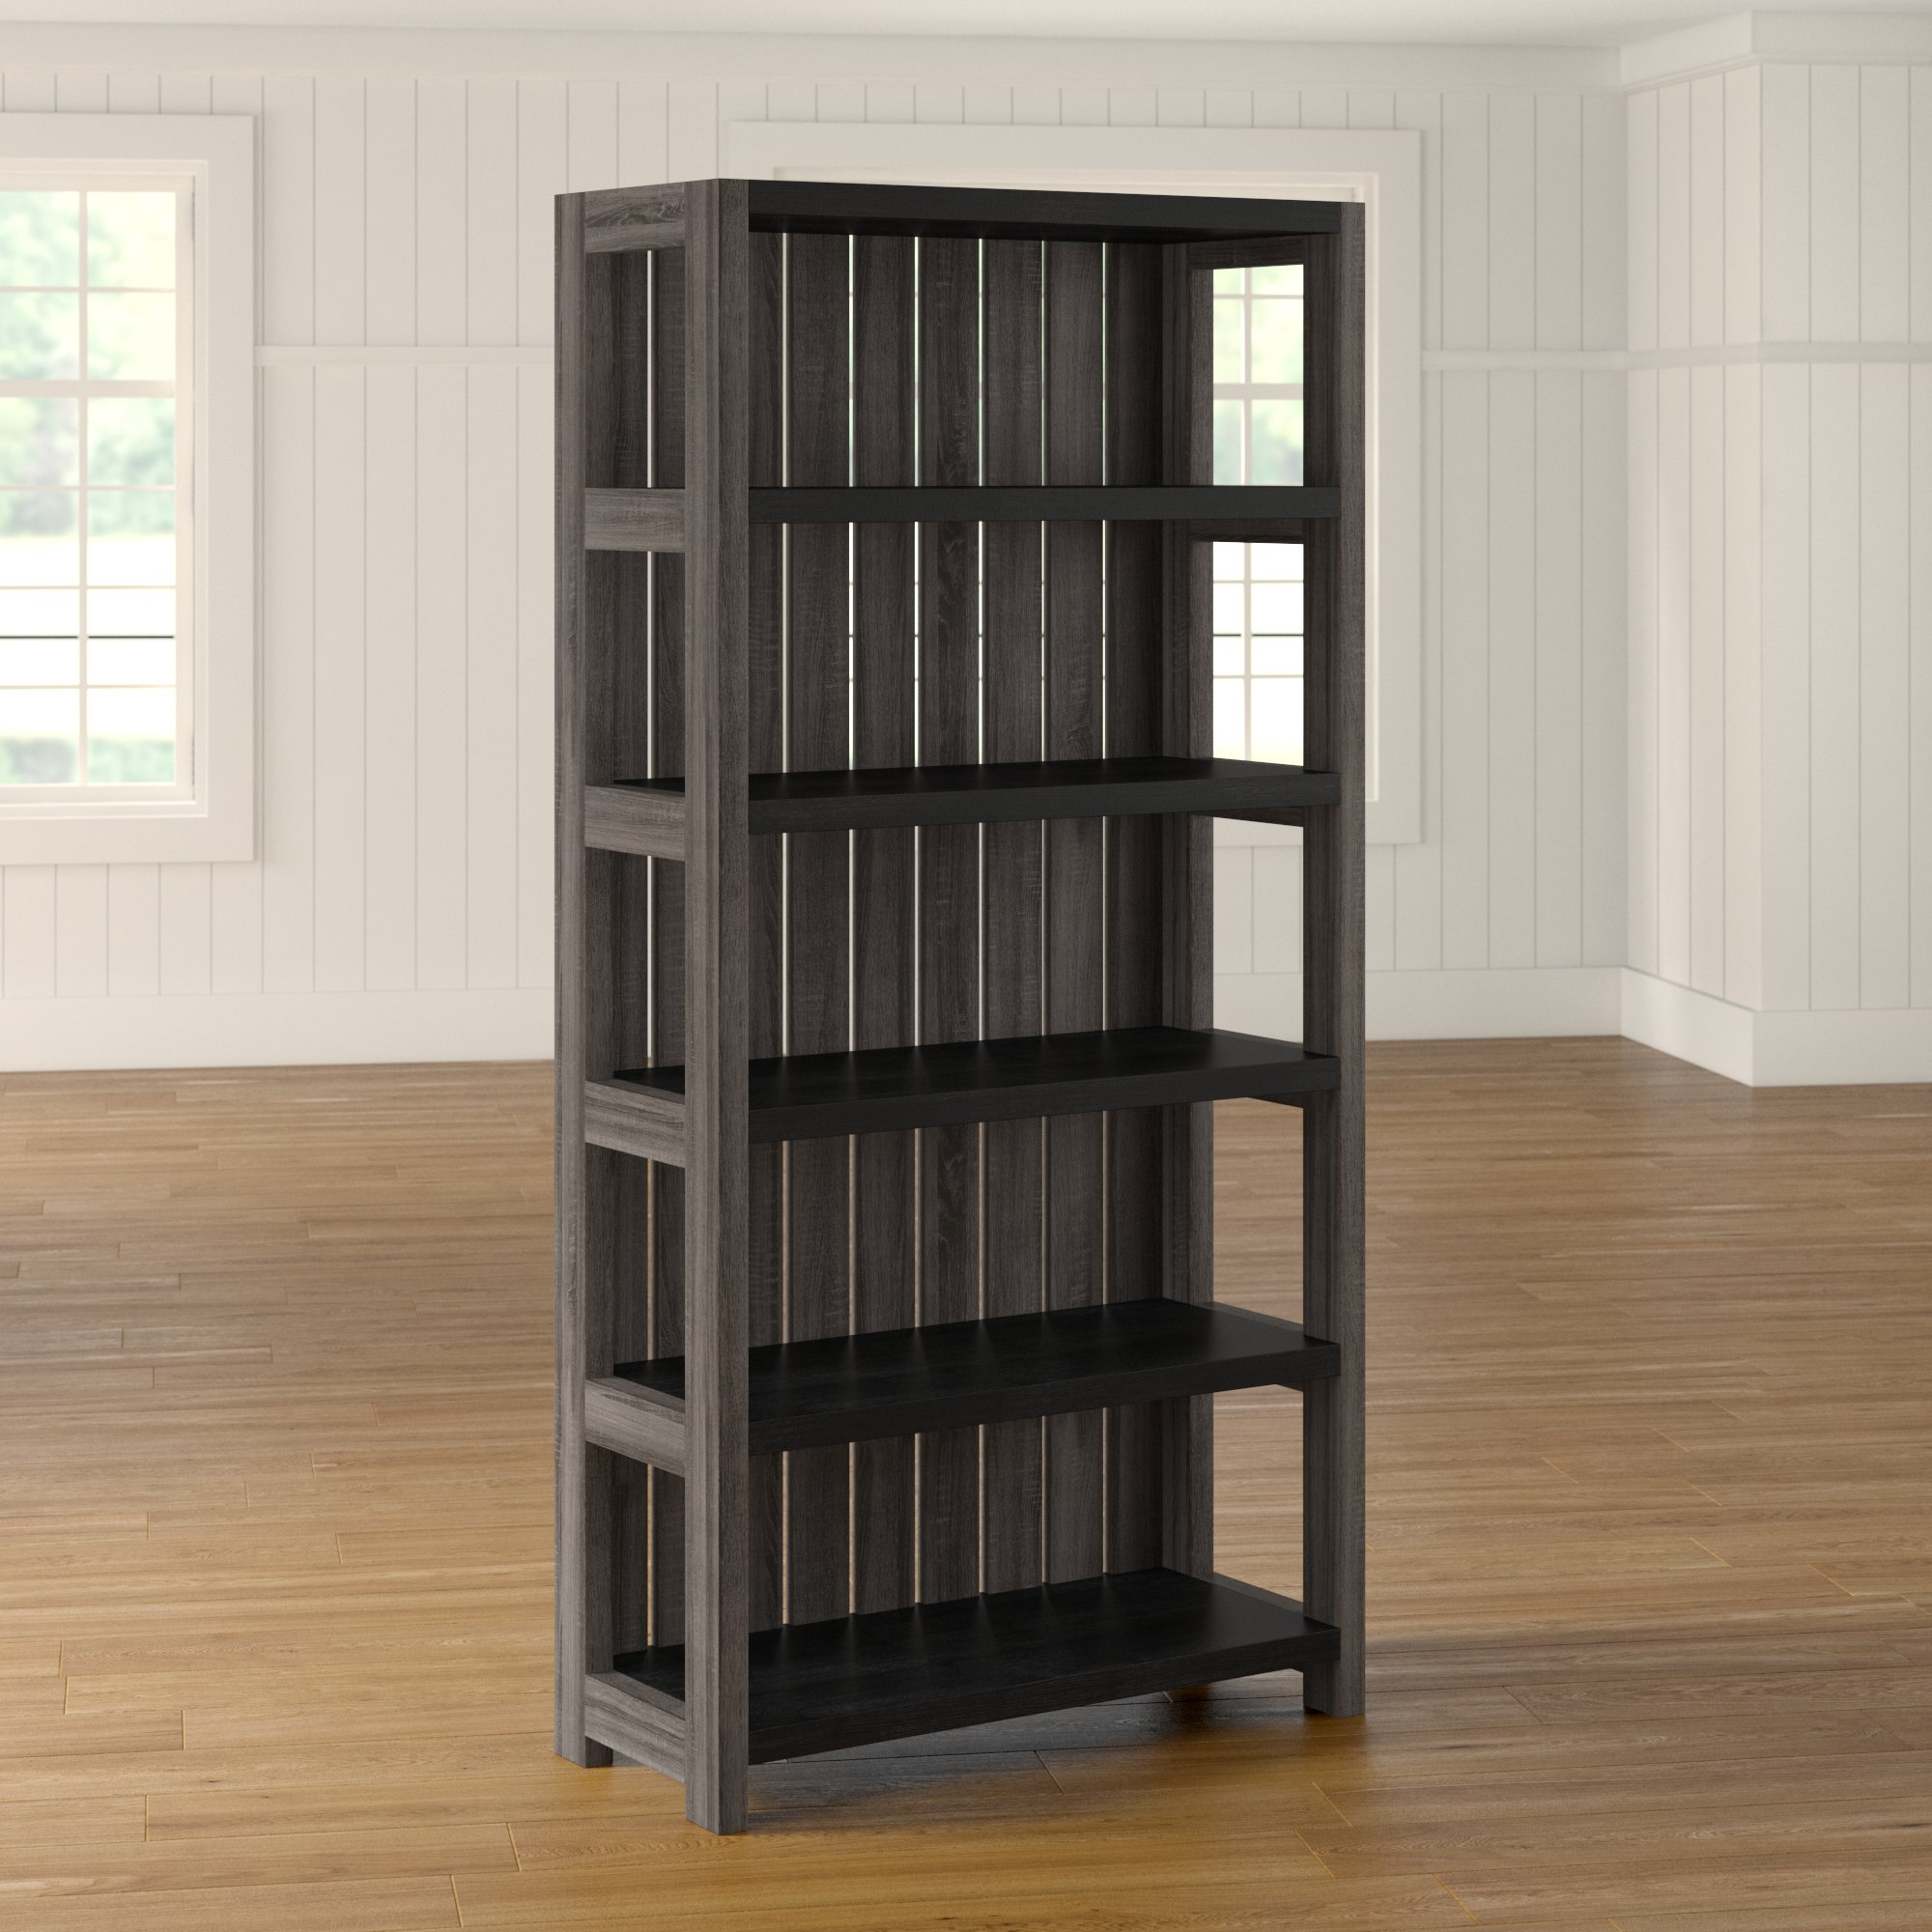 2019 Kelleia Standard Bookcase Throughout Moeller Standard Bookcases (View 6 of 20)